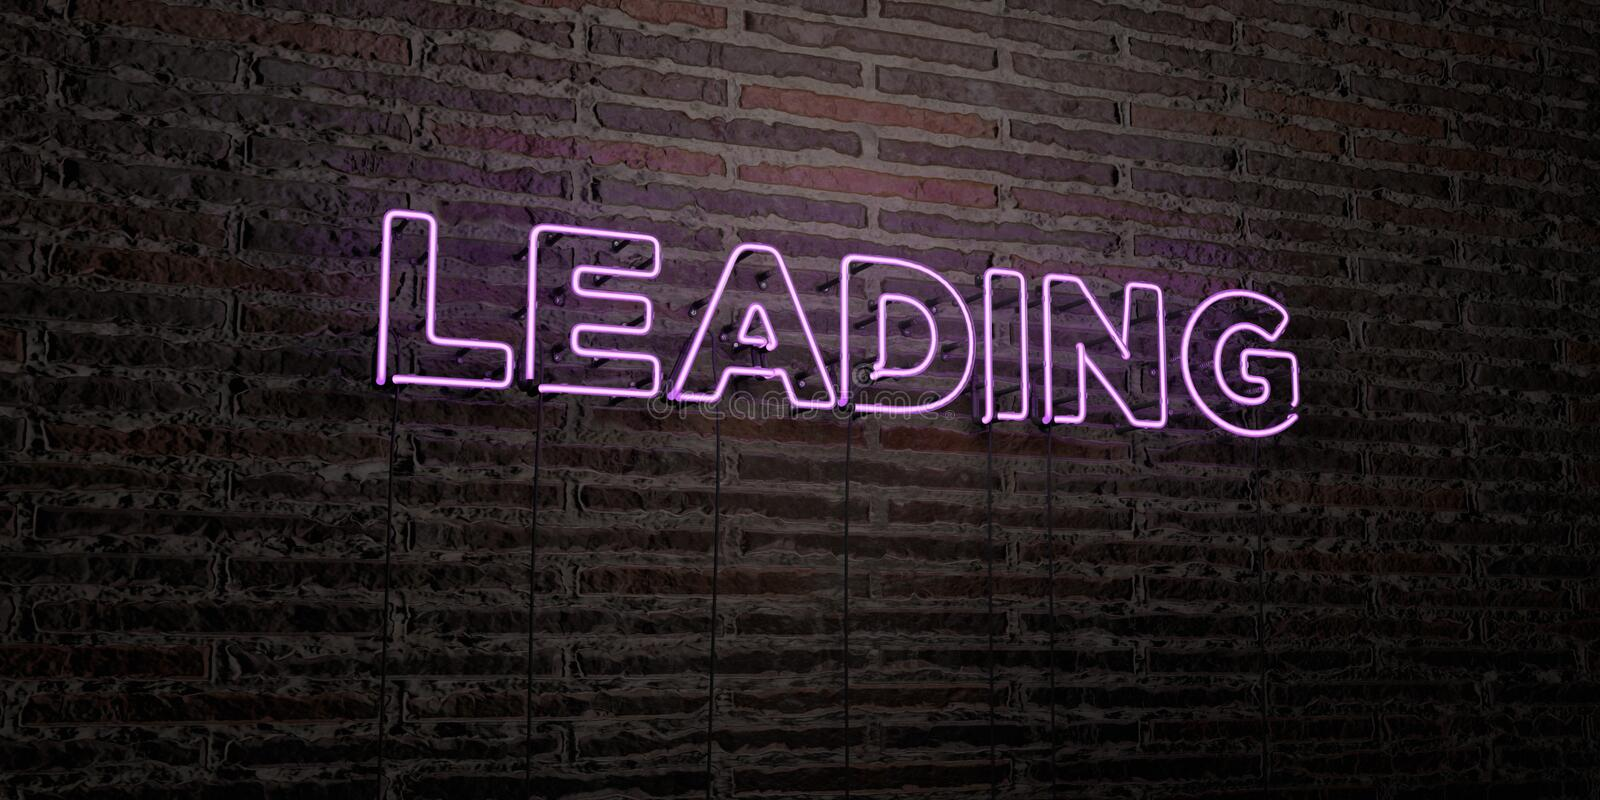 LEADING -Realistic Neon Sign on Brick Wall background - 3D rendered royalty free stock image. Can be used for online banner ads and direct mailers stock illustration